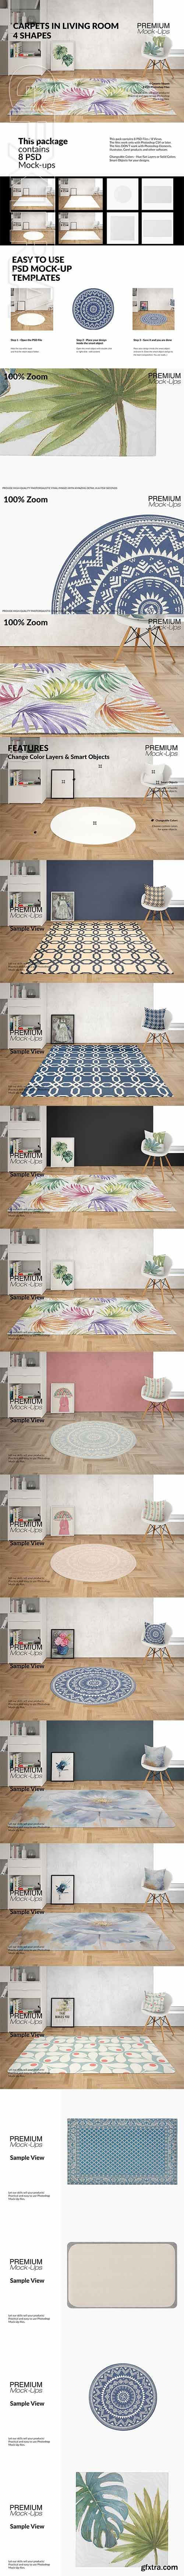 CreativeMarket - Carpets & Pillow in Living Room Set 2990331